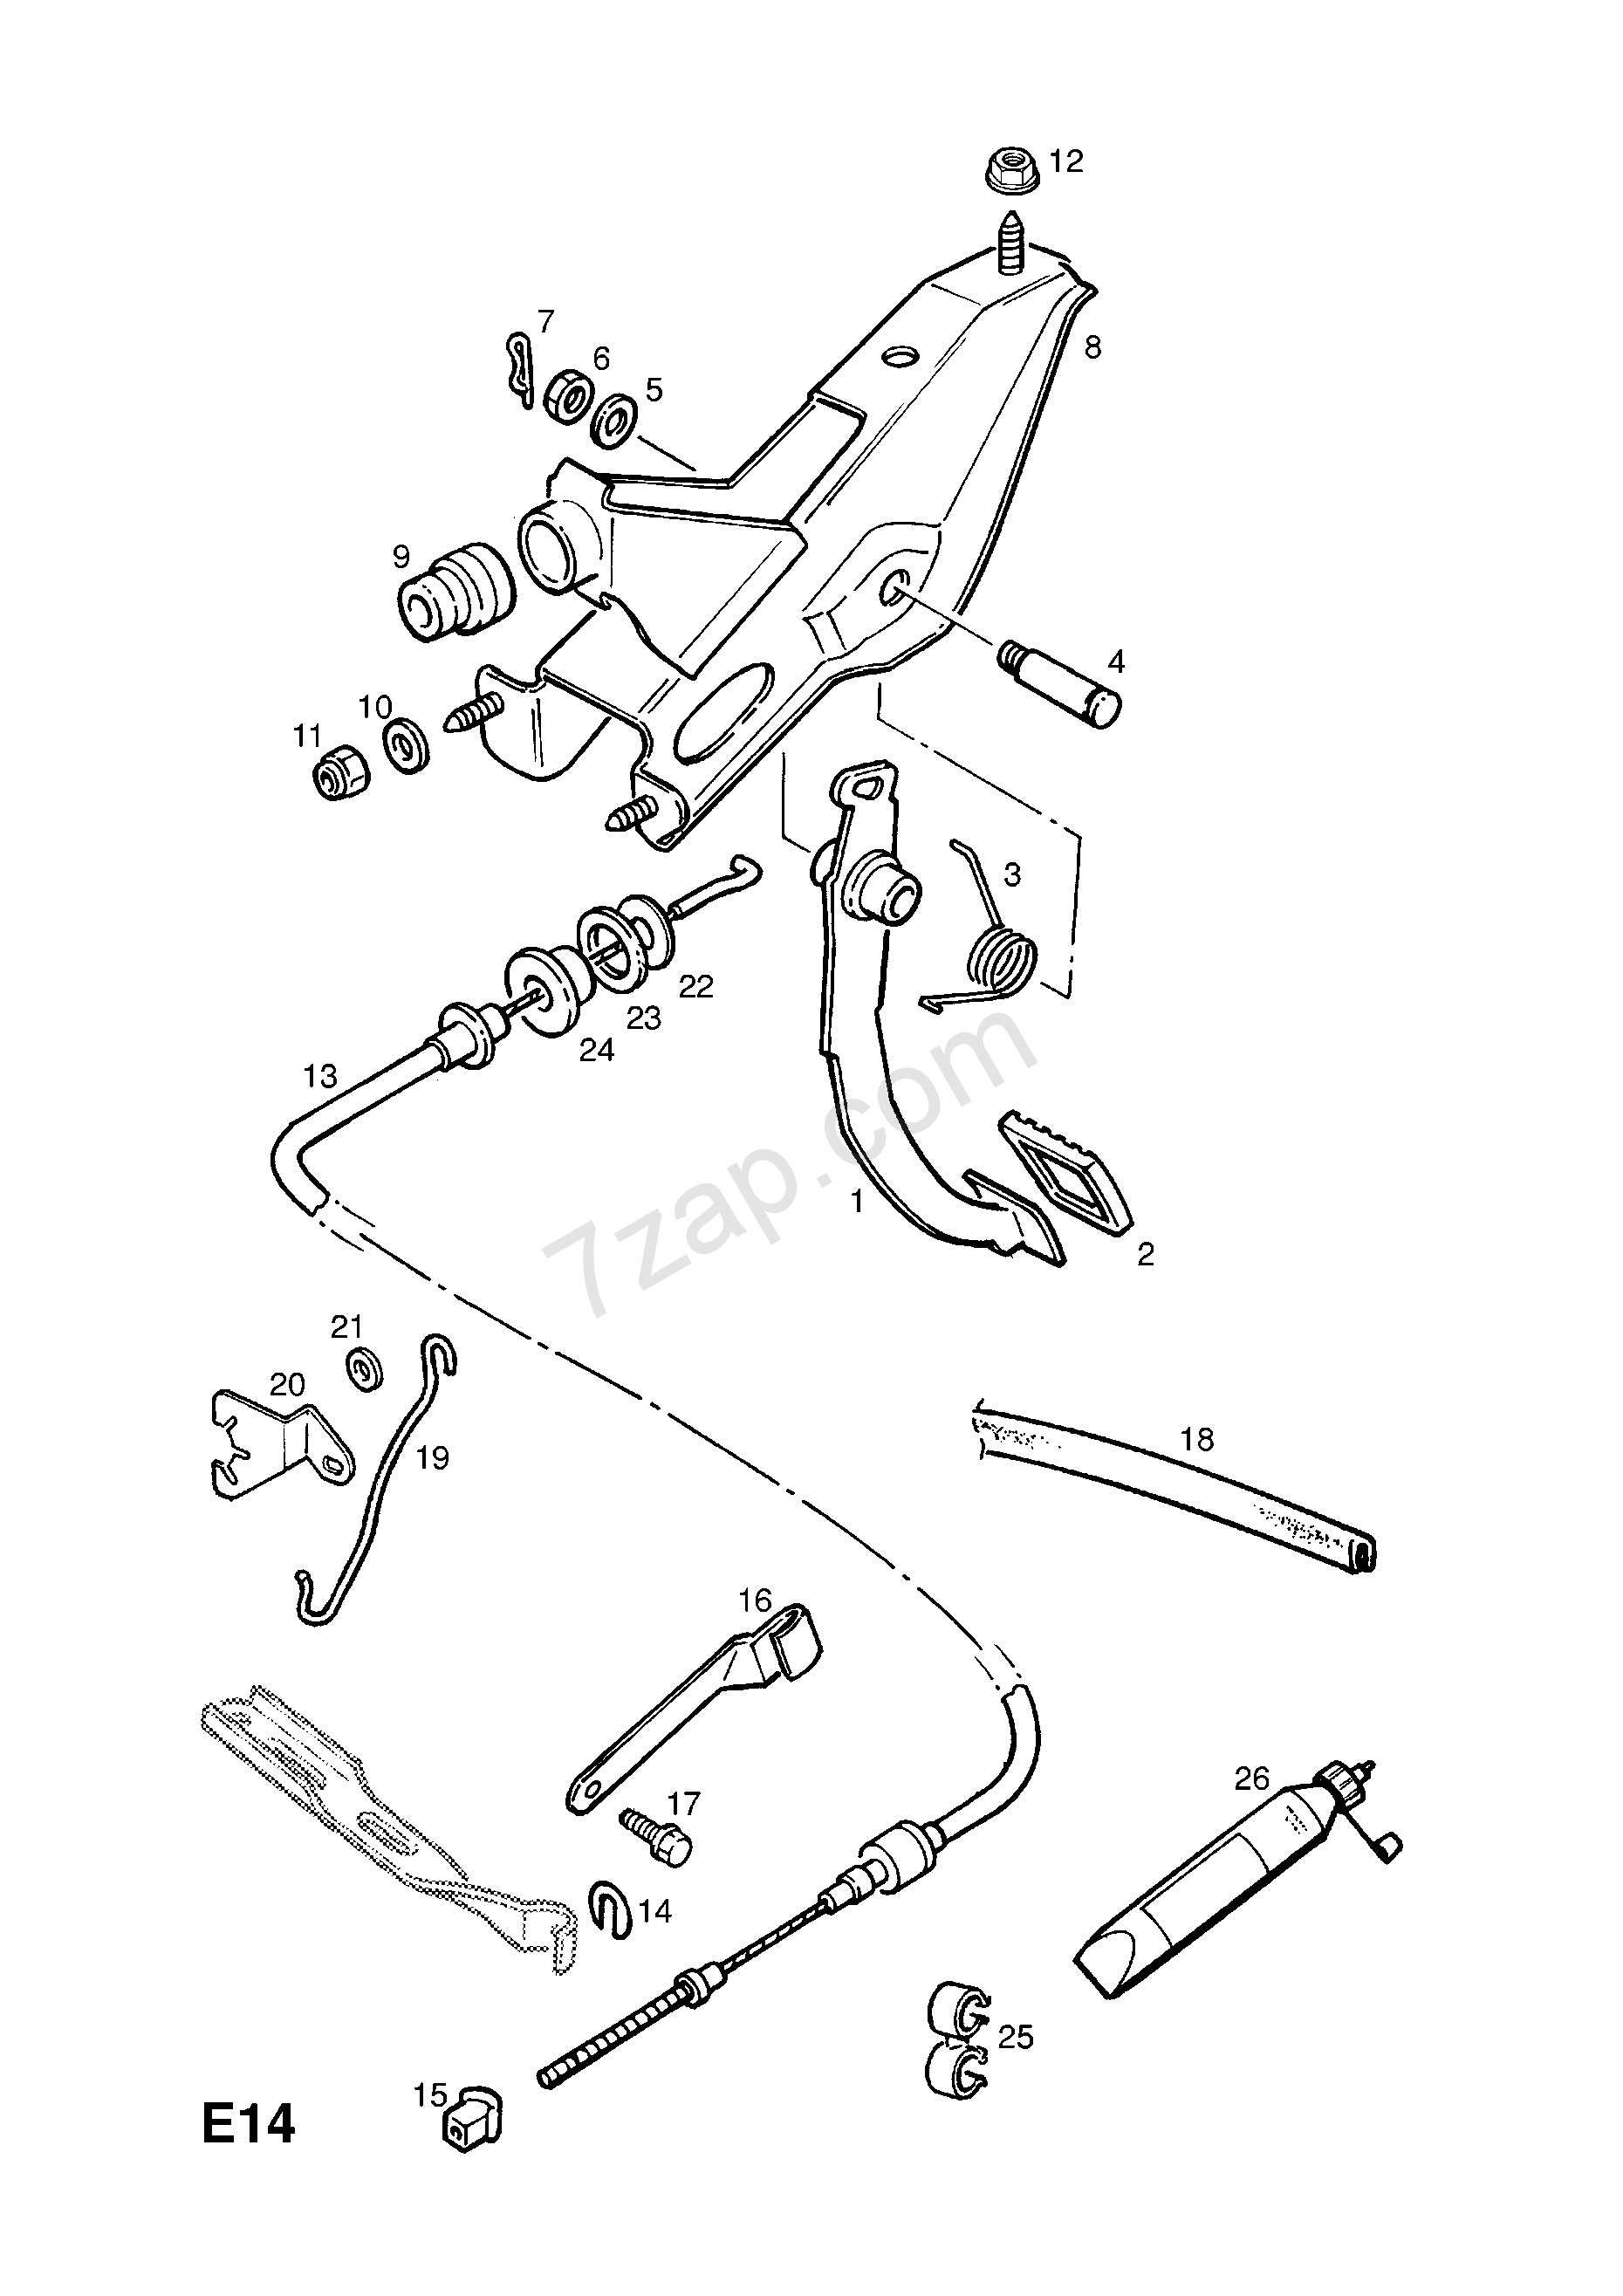 Manual Transmission Clutch Diagram Clutch Pedal and Fixings Contd [used with Manual Transmission Rhd Of Manual Transmission Clutch Diagram